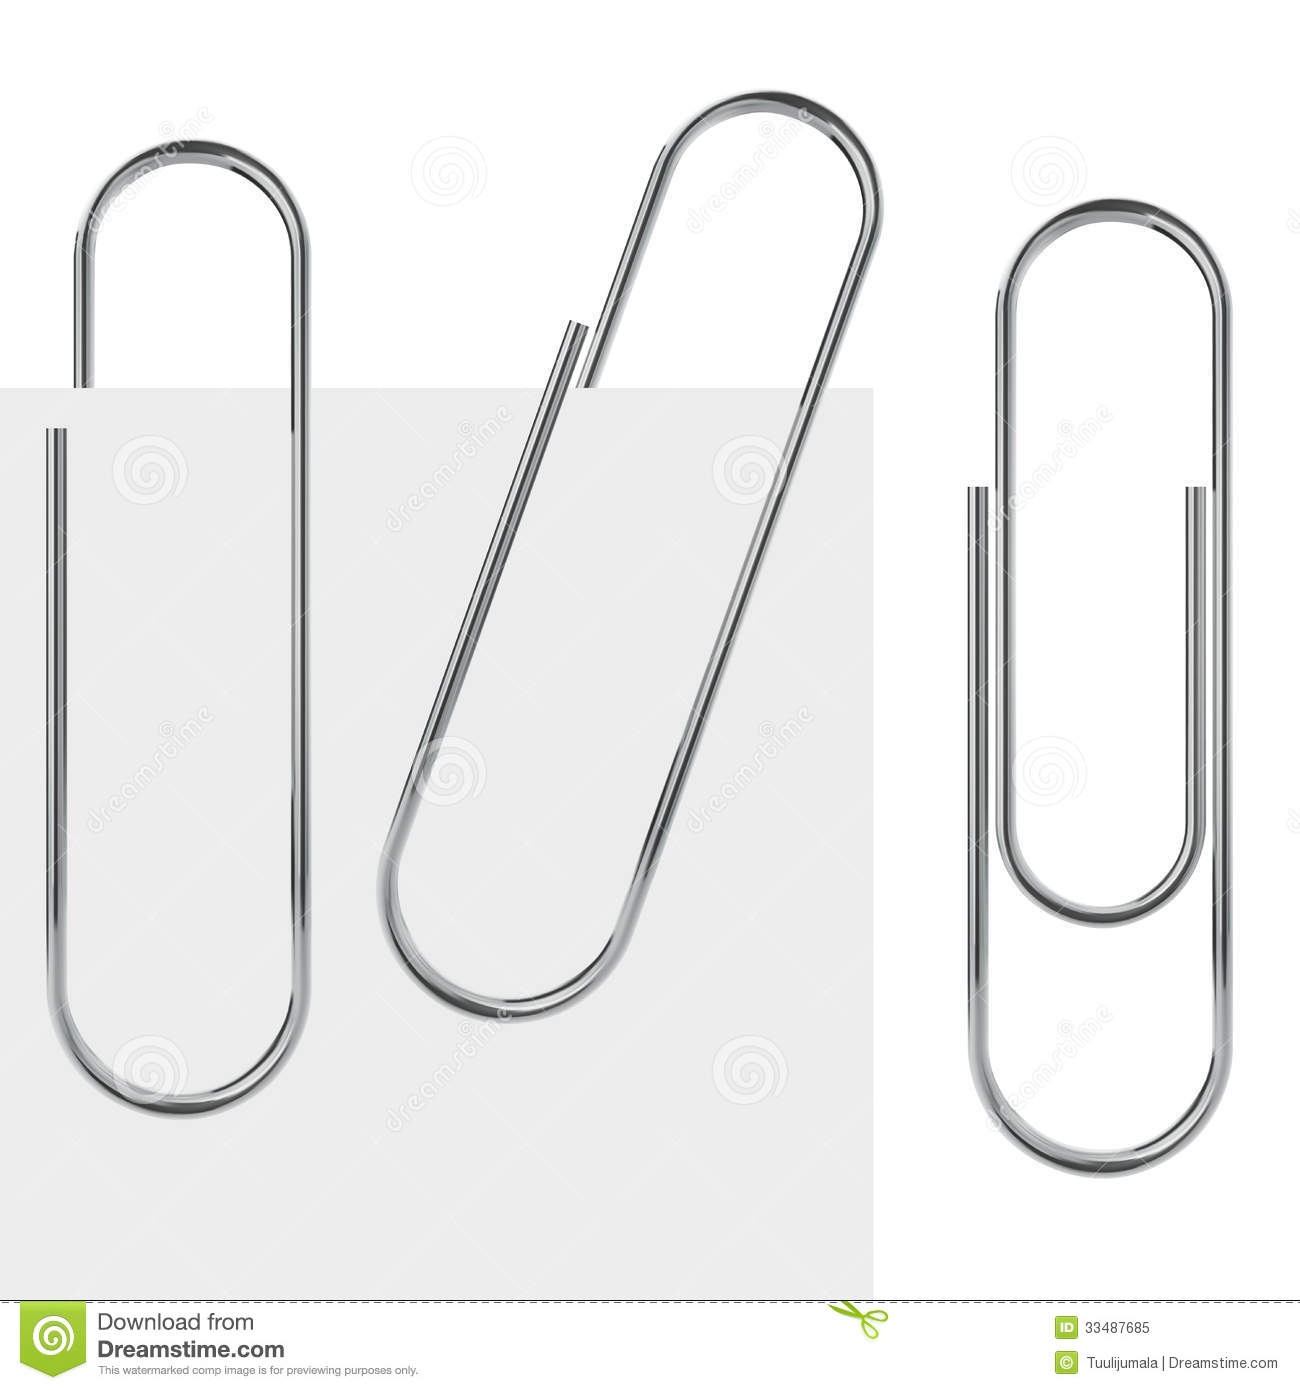 Metal paperclip template isolated on white background with samples.